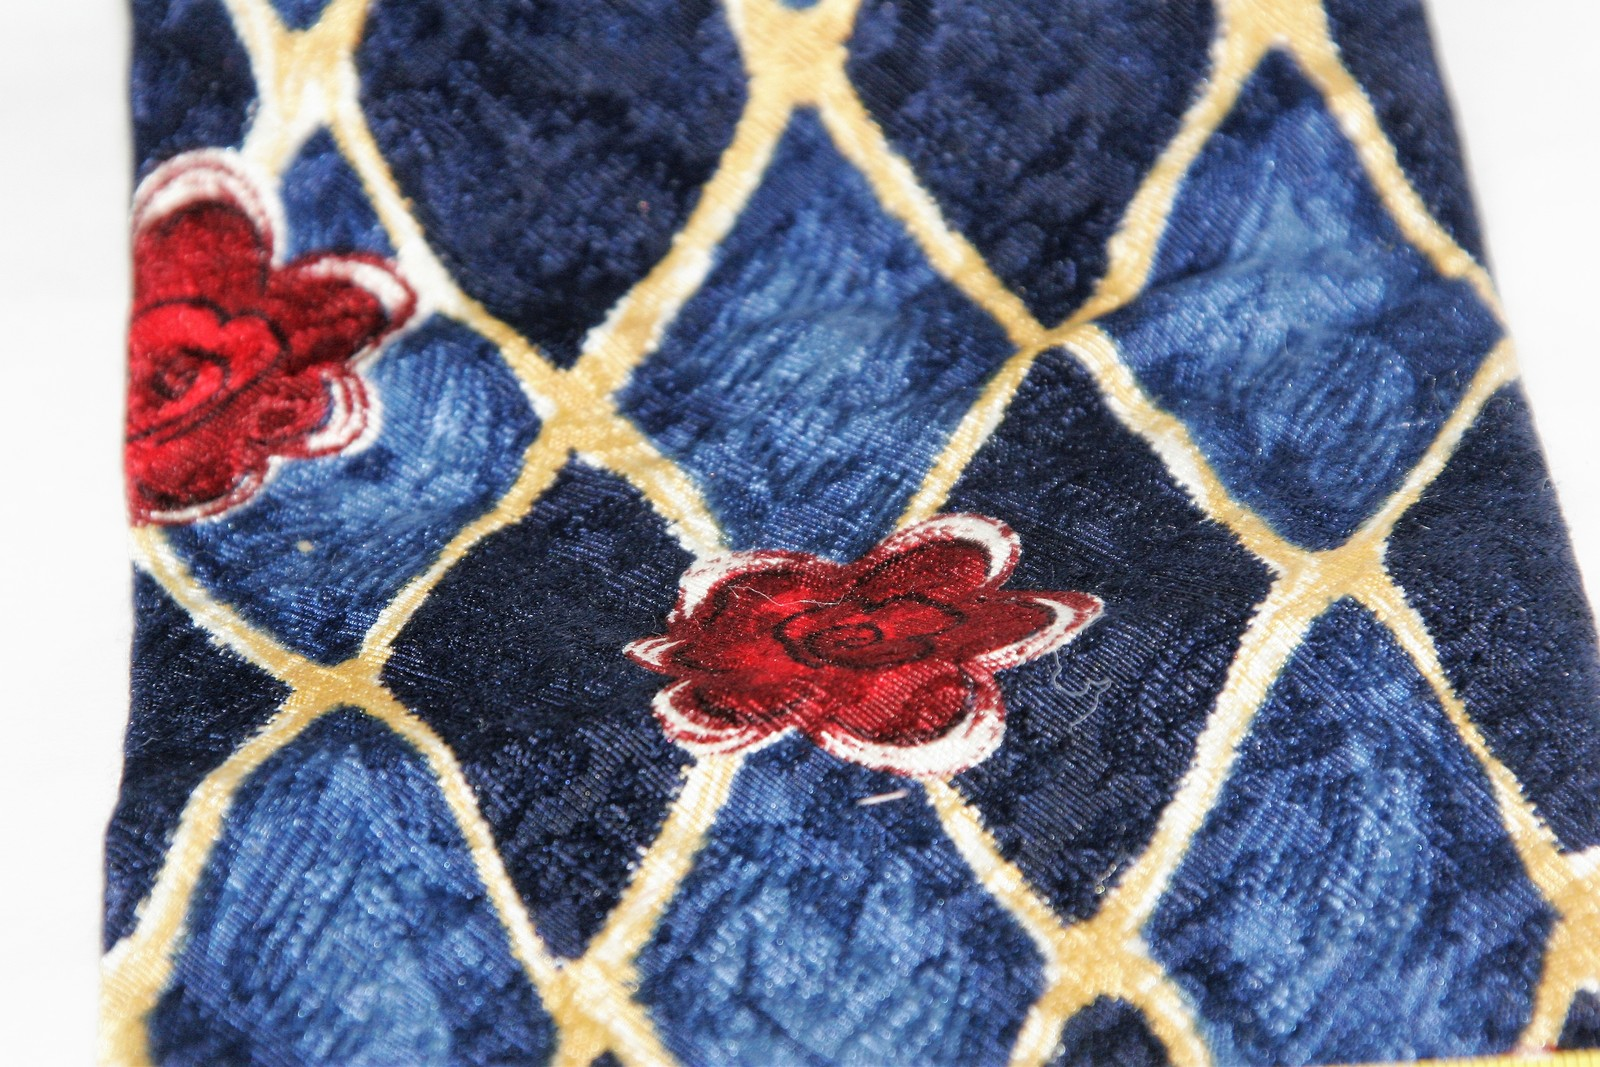 Classic Geoffrey Beene 100% Silk Men's Necktie Blues/golds/reds